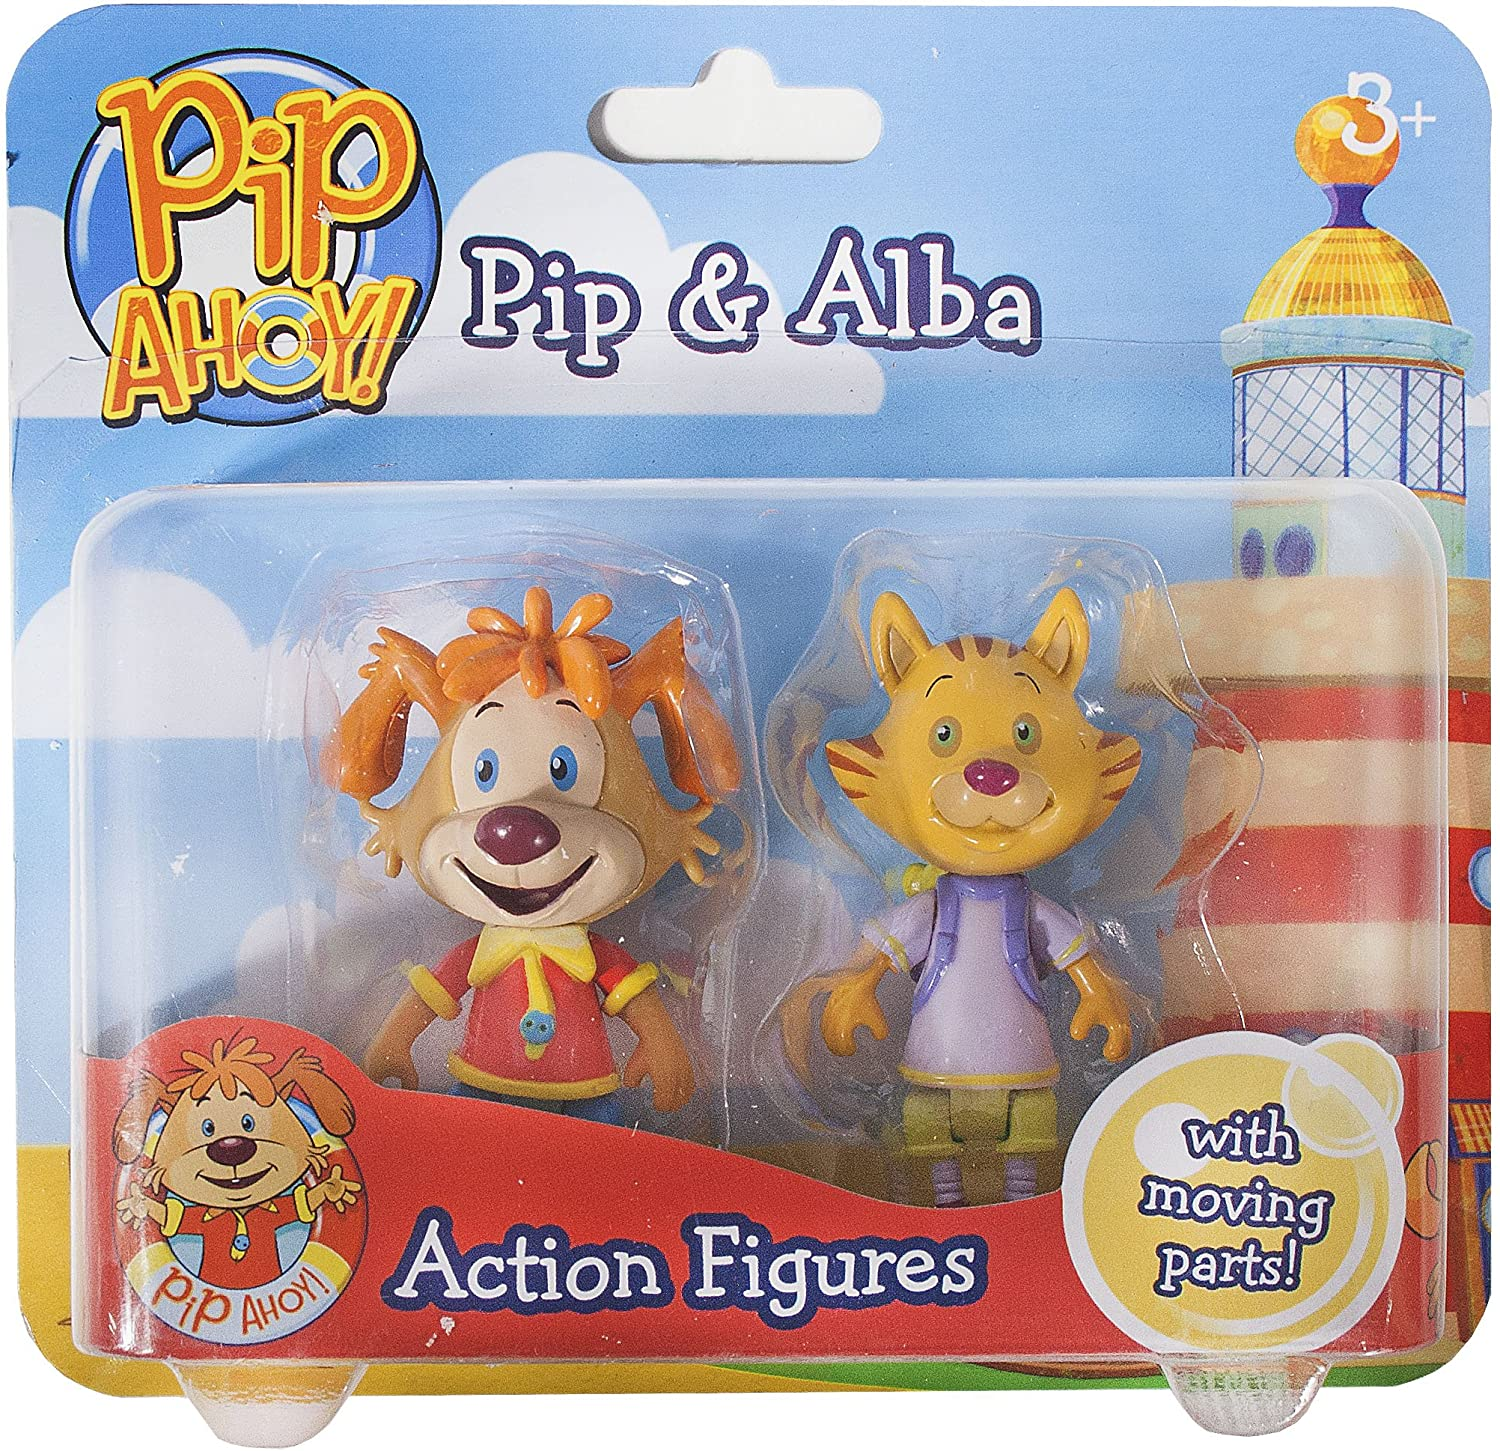 John Adams Pip Ahoy! Pip and Alba Action Figures